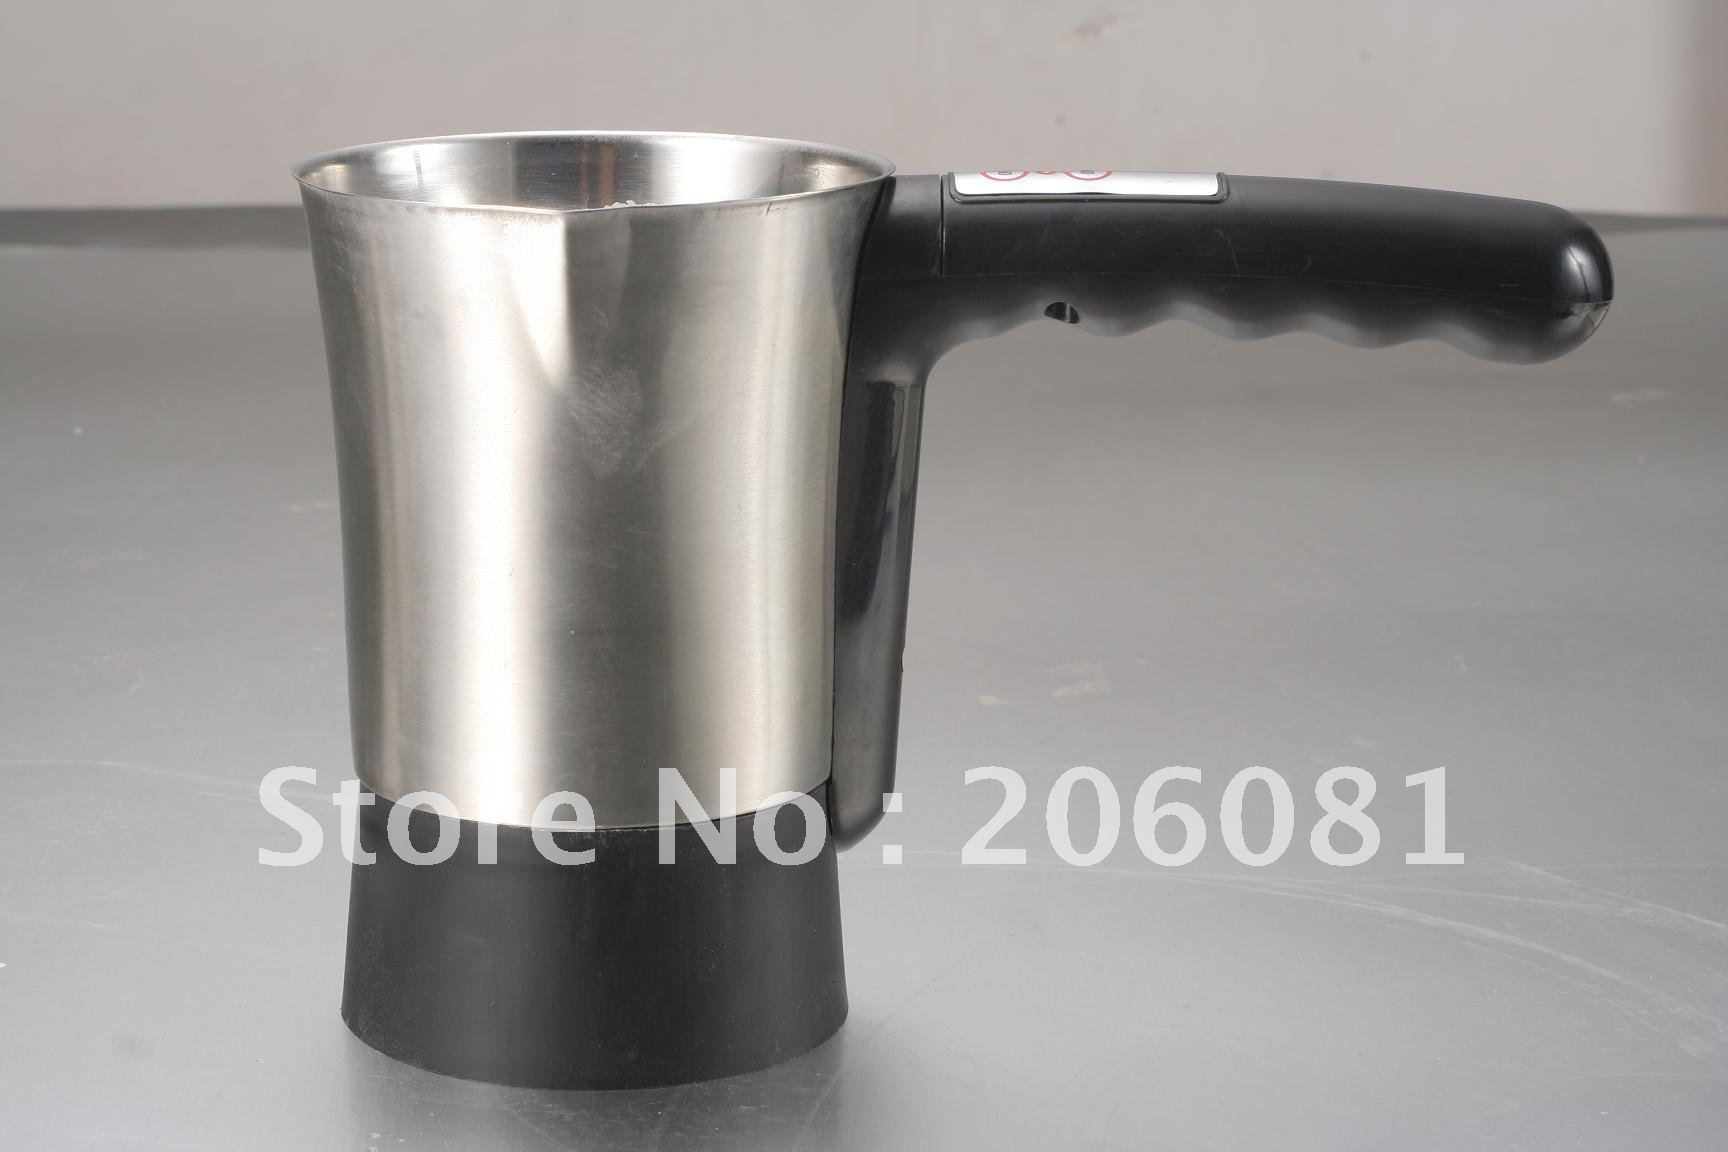 Electric Milk frother,capuccino coffee maker,autoamtic milk frother make,Milk foaming machine with lid milk